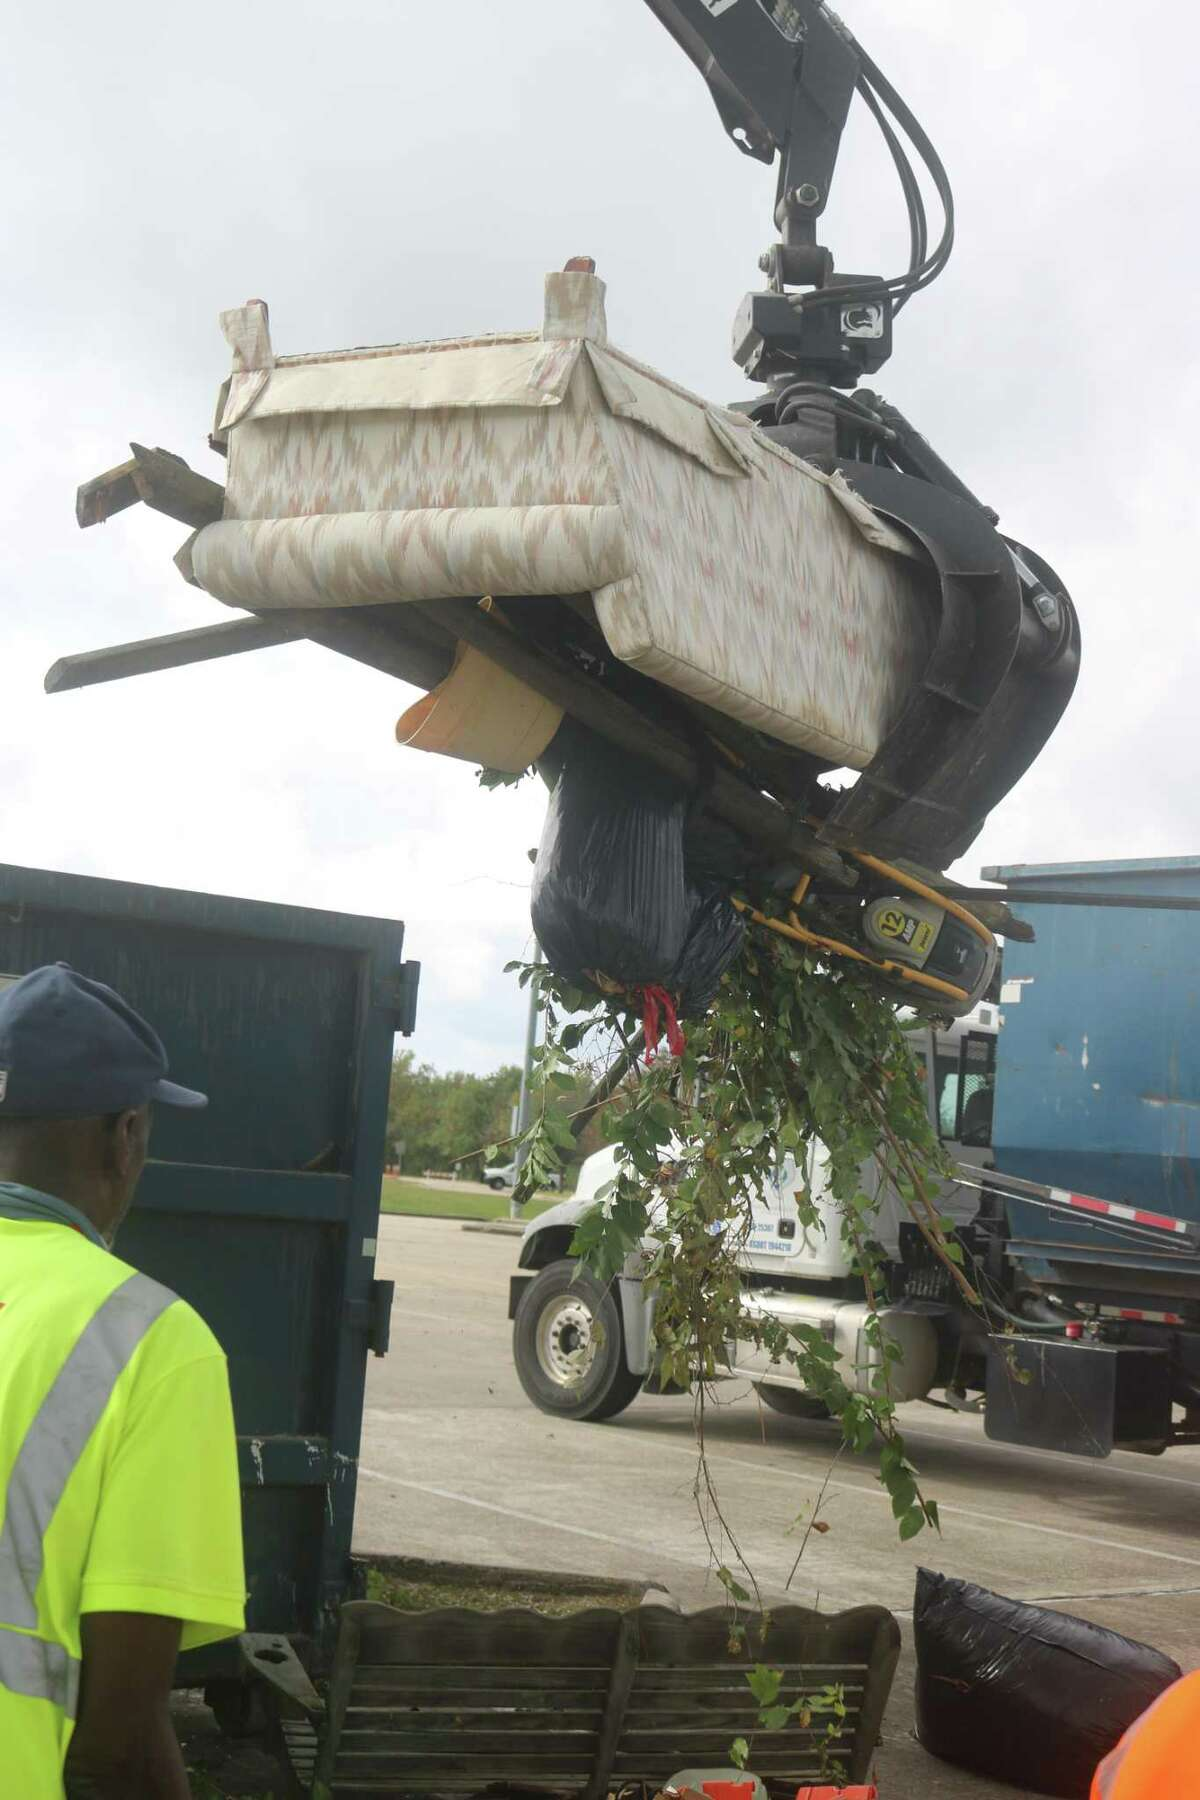 A couch and other debris is scooped up by the claw and placed in a dumpster during the city of Friendswood's annual Fall Haul.